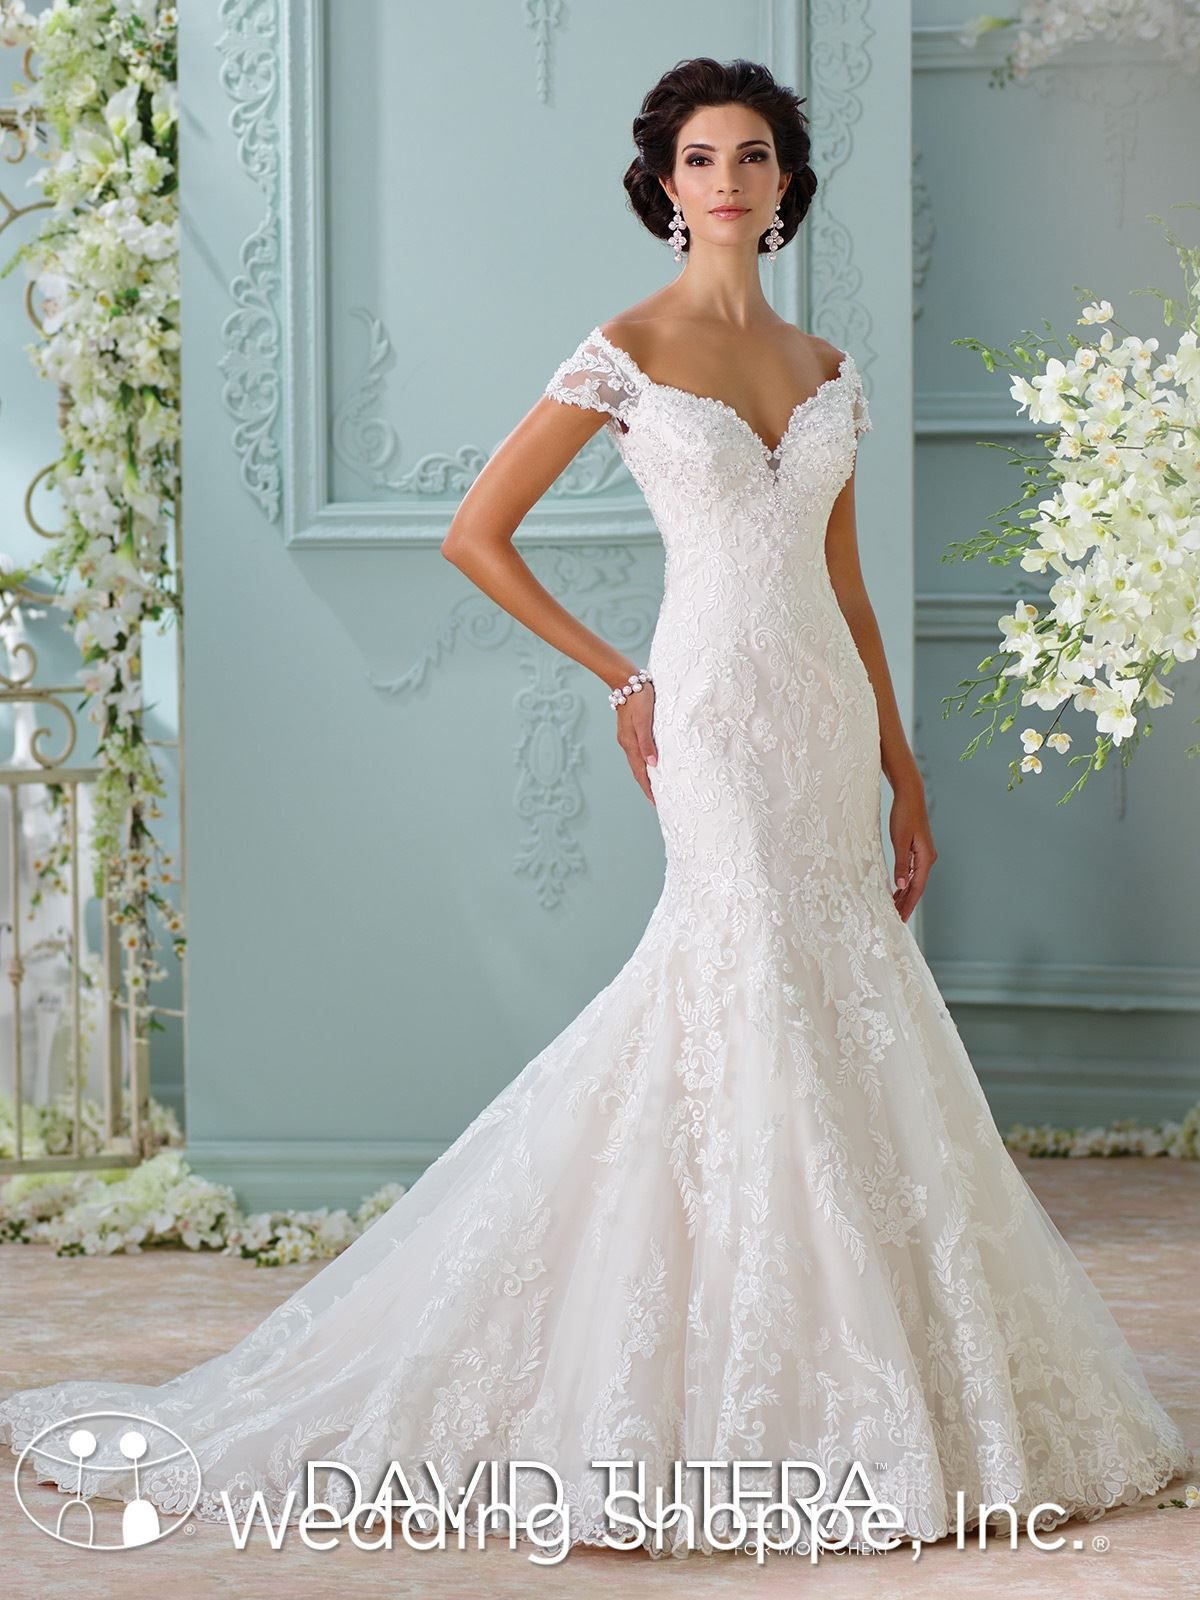 David tutera for mon cheri bridal gown aura wedding